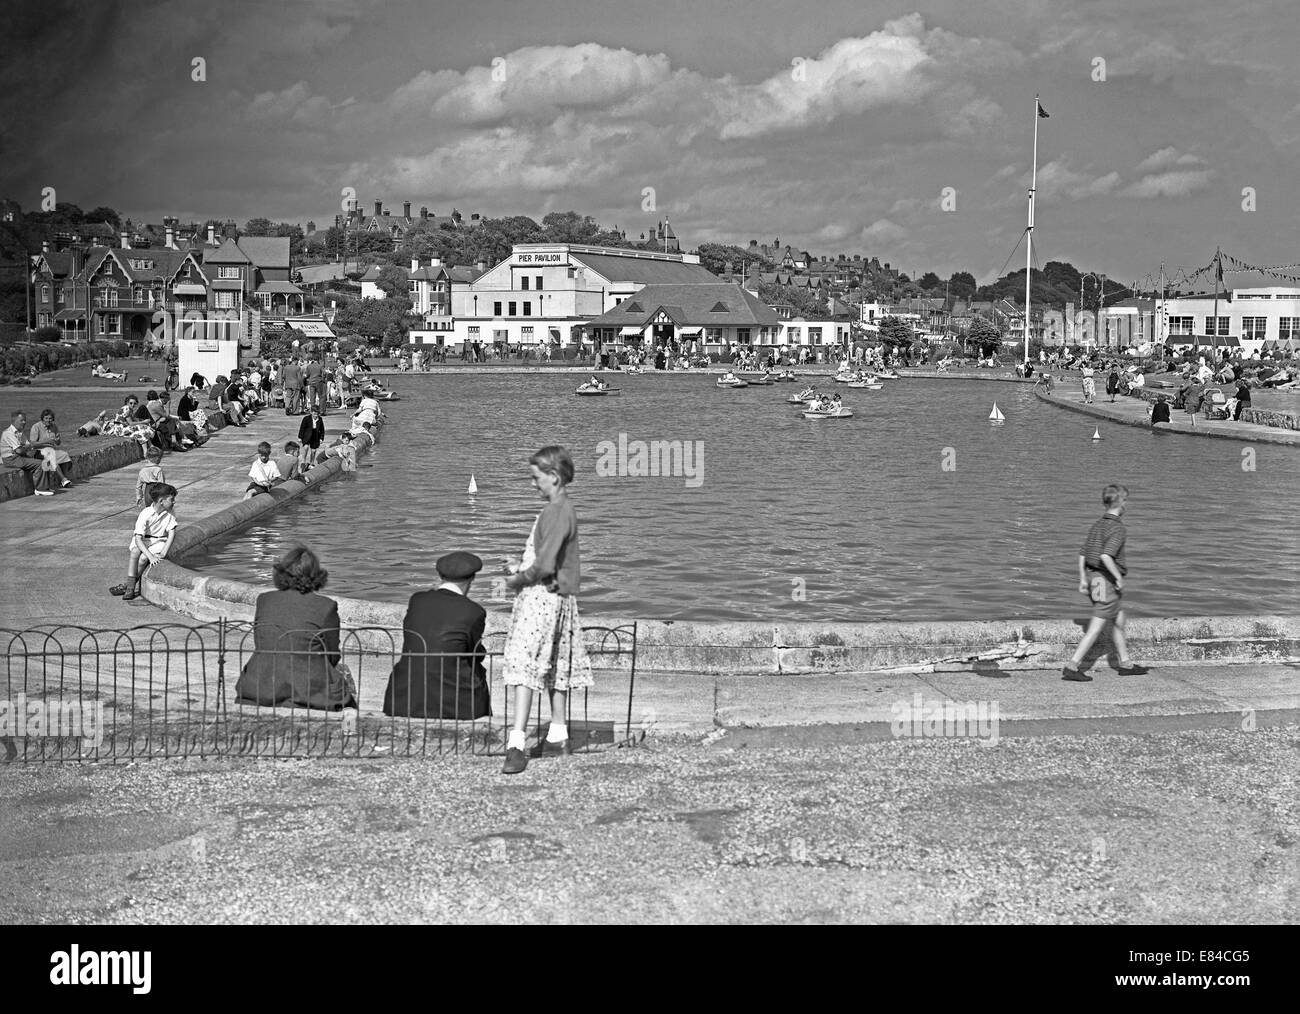 The boating lake and the Pier Pavilion at Felixstowe, Suffolk, England c.1950 - Stock Image